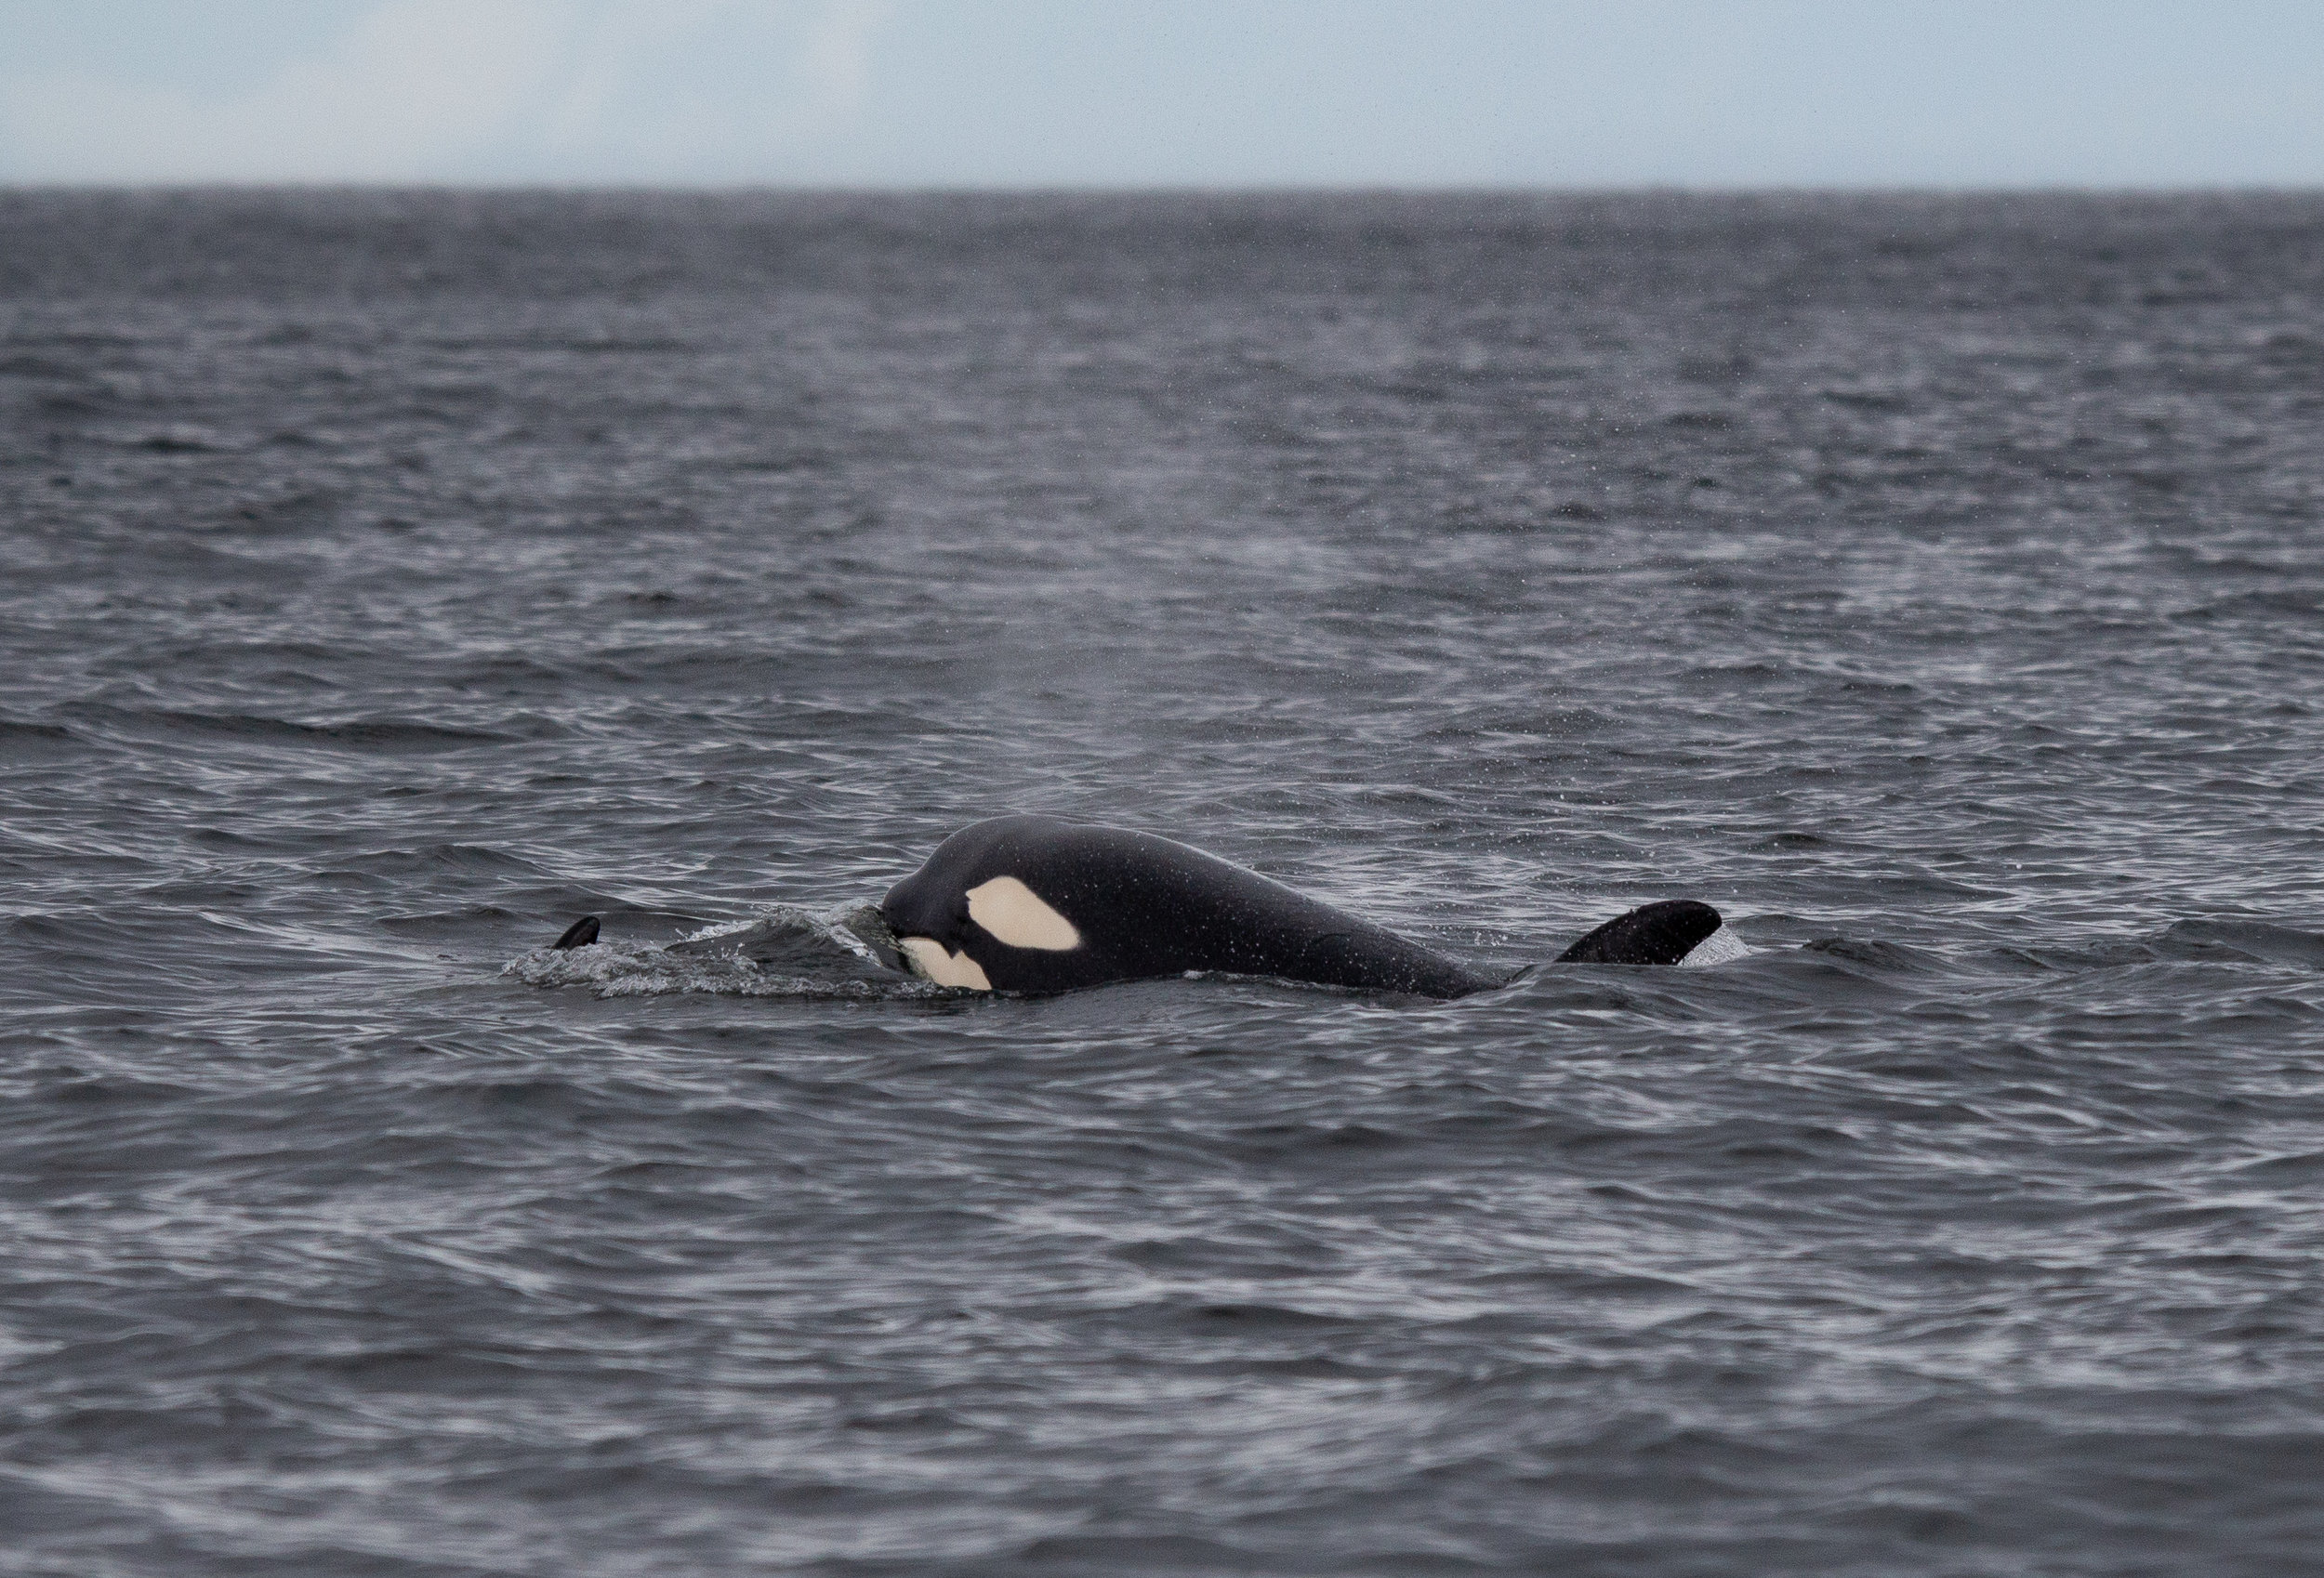 This curious whale popped it's head a bit higher and we were able to see the entire white eye patch and the white lower jaw! Photo by Natalie Reichenbacher